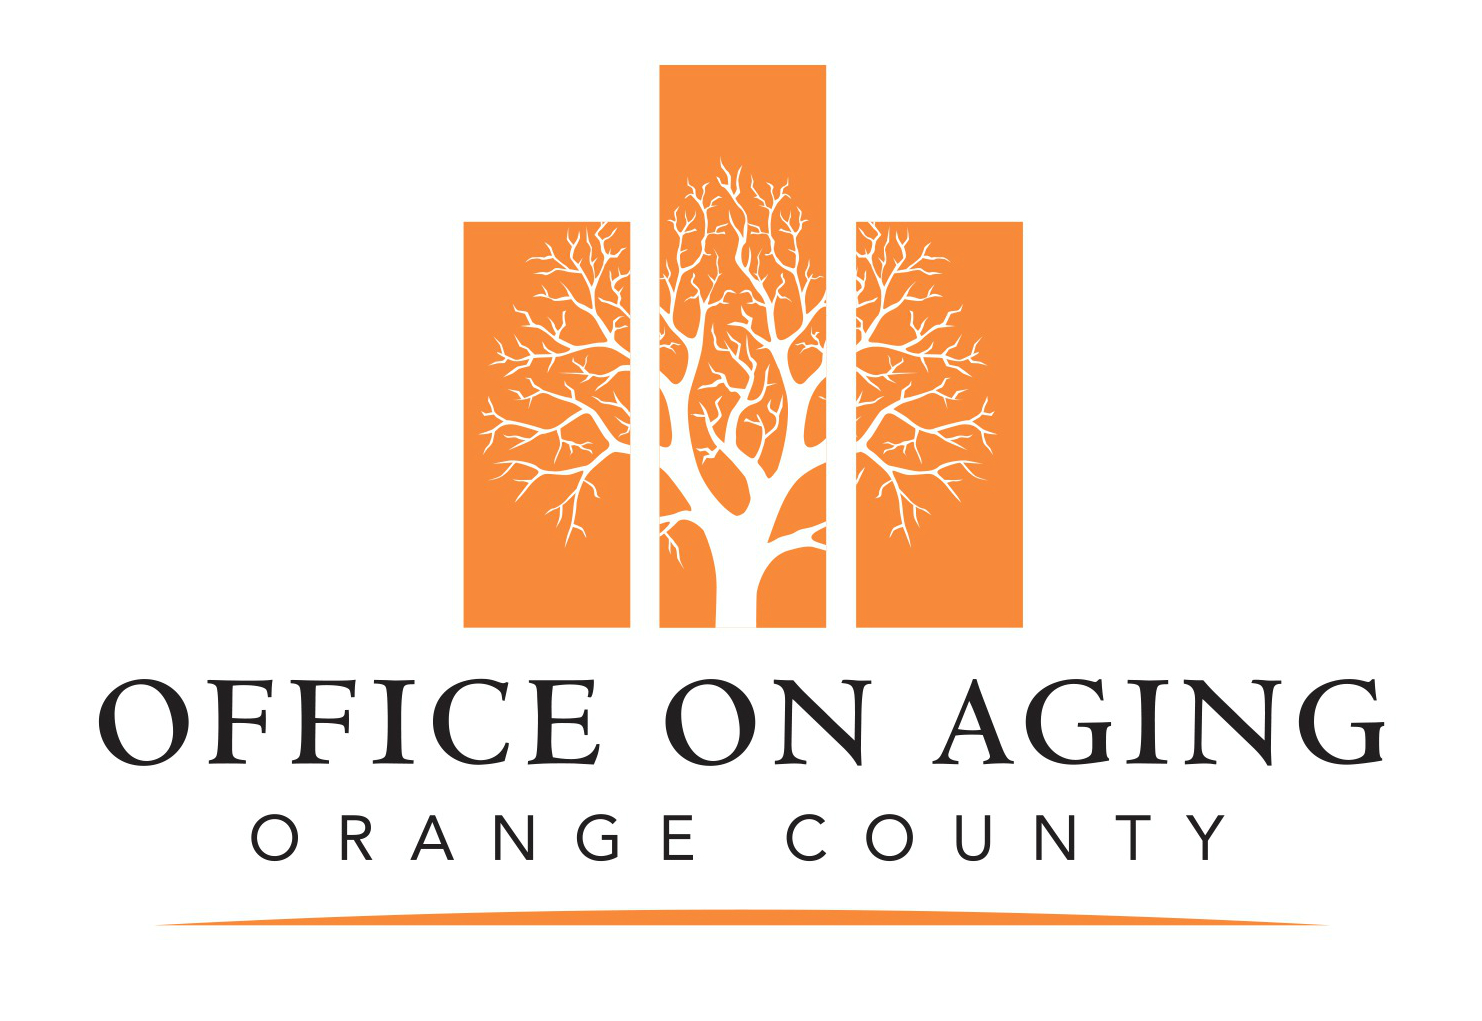 Orange County Office on Aging